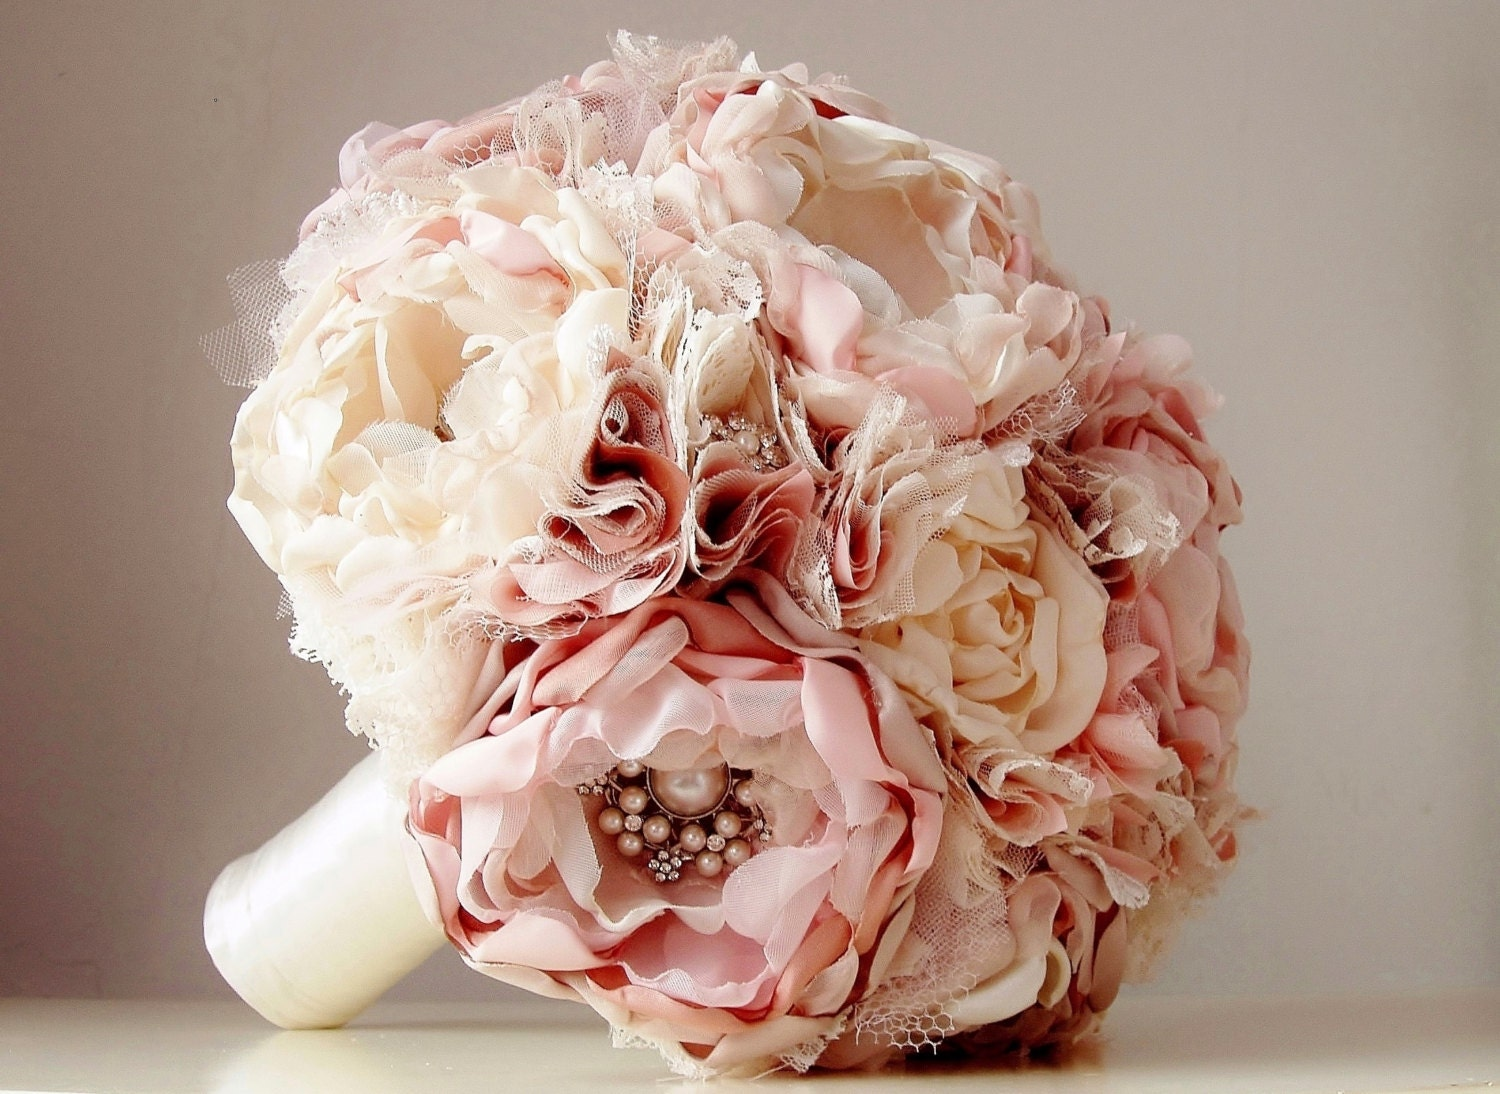 Bridal Bouquets Made Out Of Brooches: How to make brooch bouquets ...